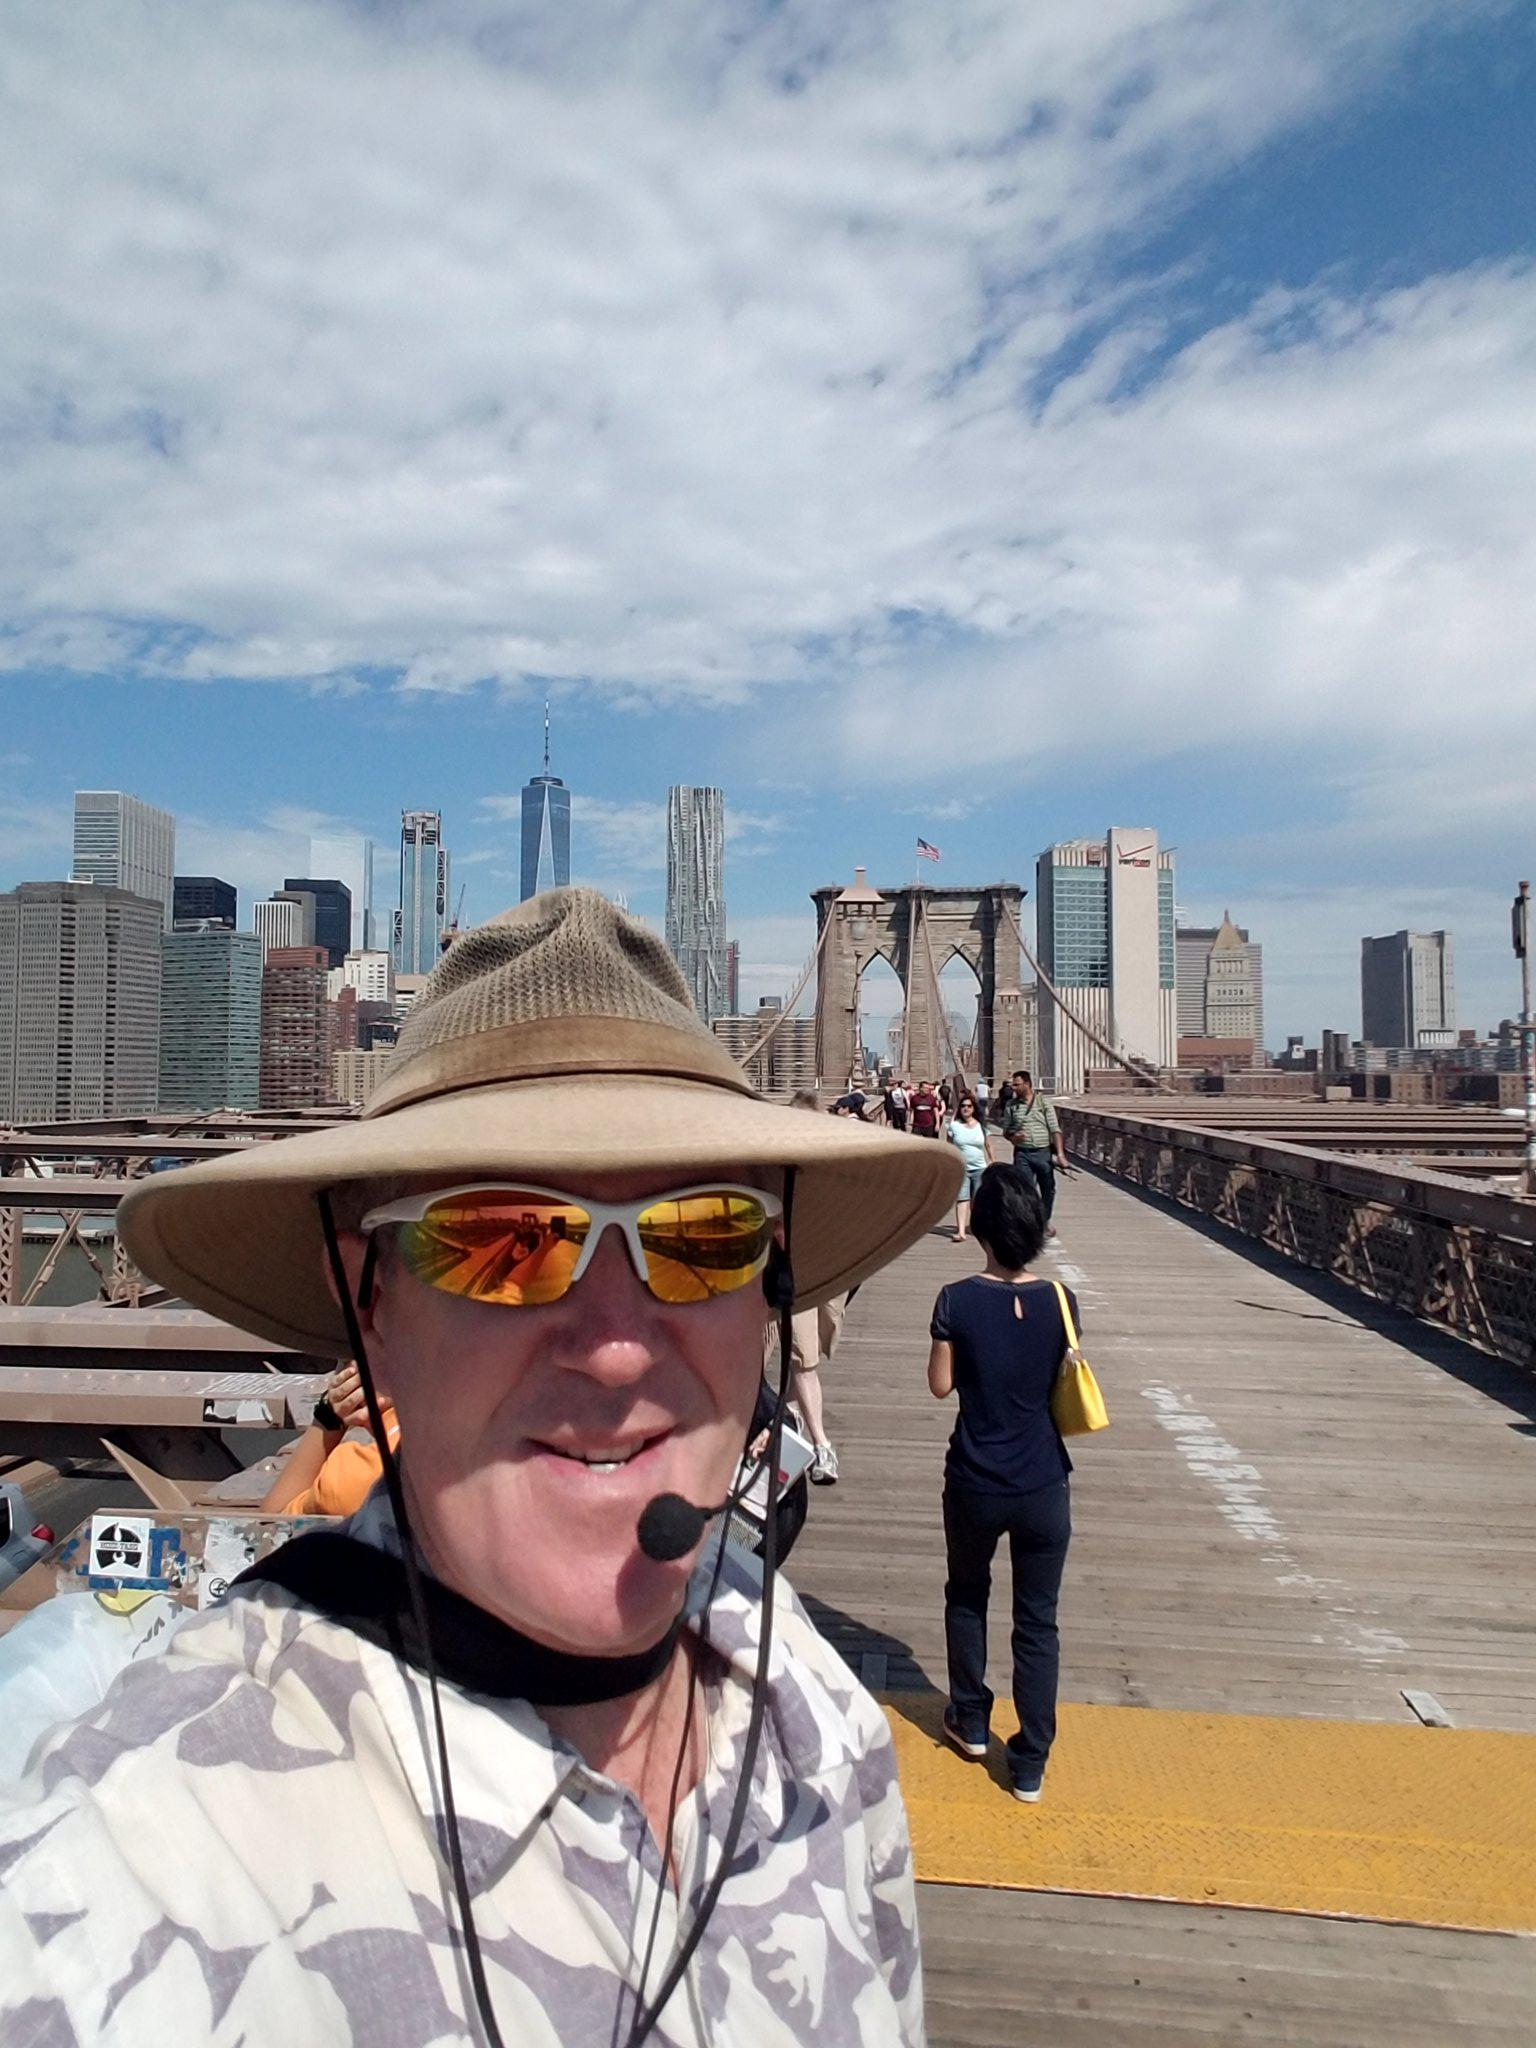 Tour guide Stan will share his vast knowledge with you as you explore the city.